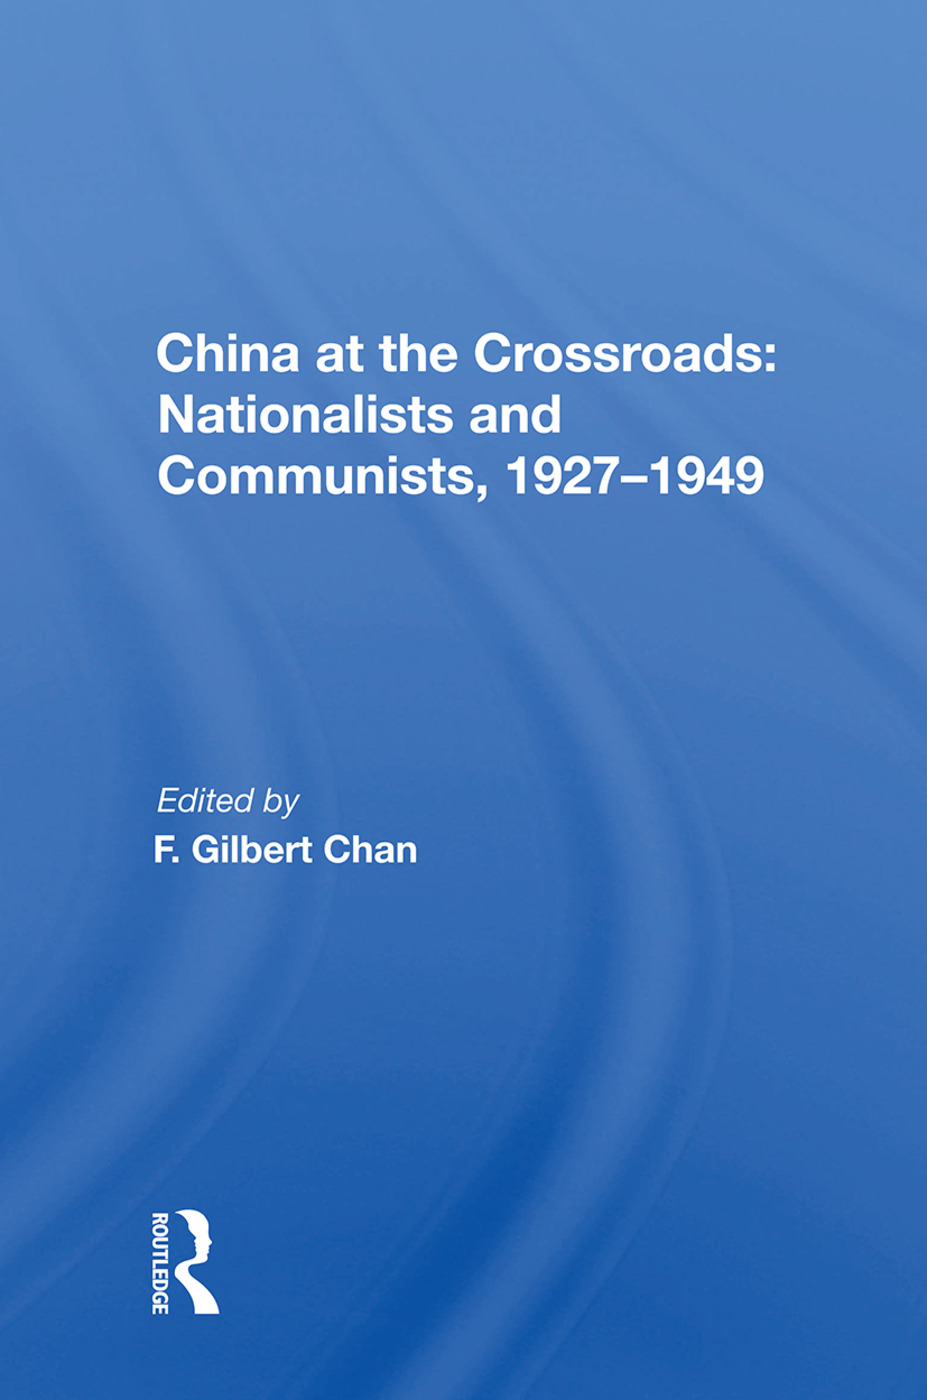 China at the Crossroads: Nationalists and Communists, 1927-1949 book cover